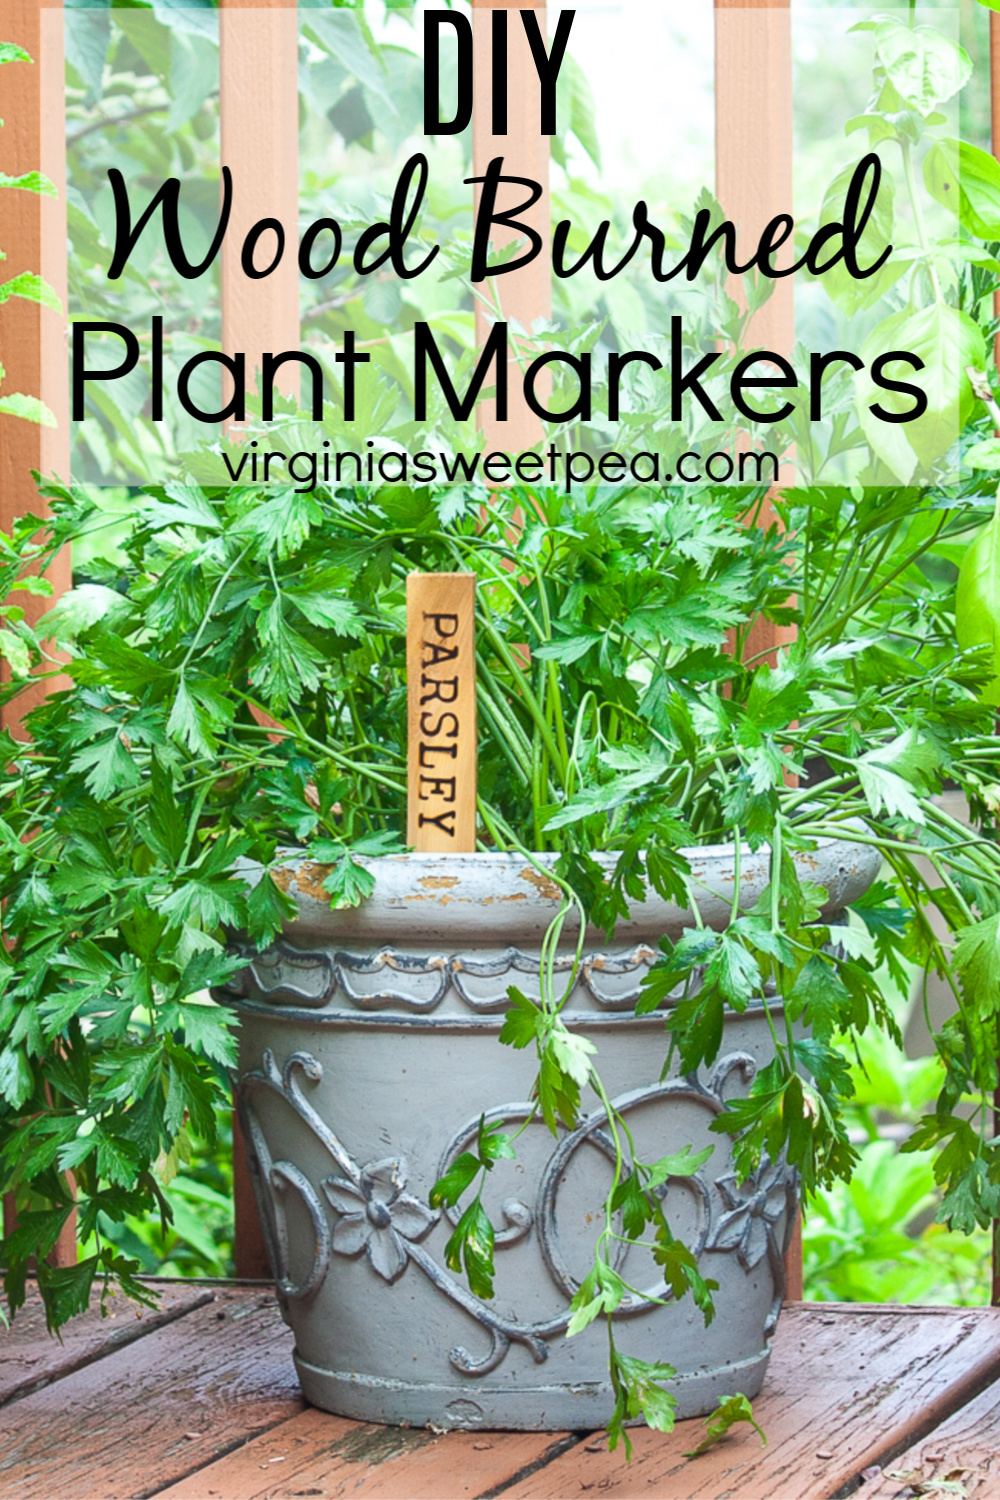 DIY Wood Burned Plant Markers - Learn how to make wood burned plant markers to use to mark herbs, vegetables, or flowers.  This is an easy DIY that can be used for many years and they make a great gift!  #diyplantmarker #woodburning via @spaula